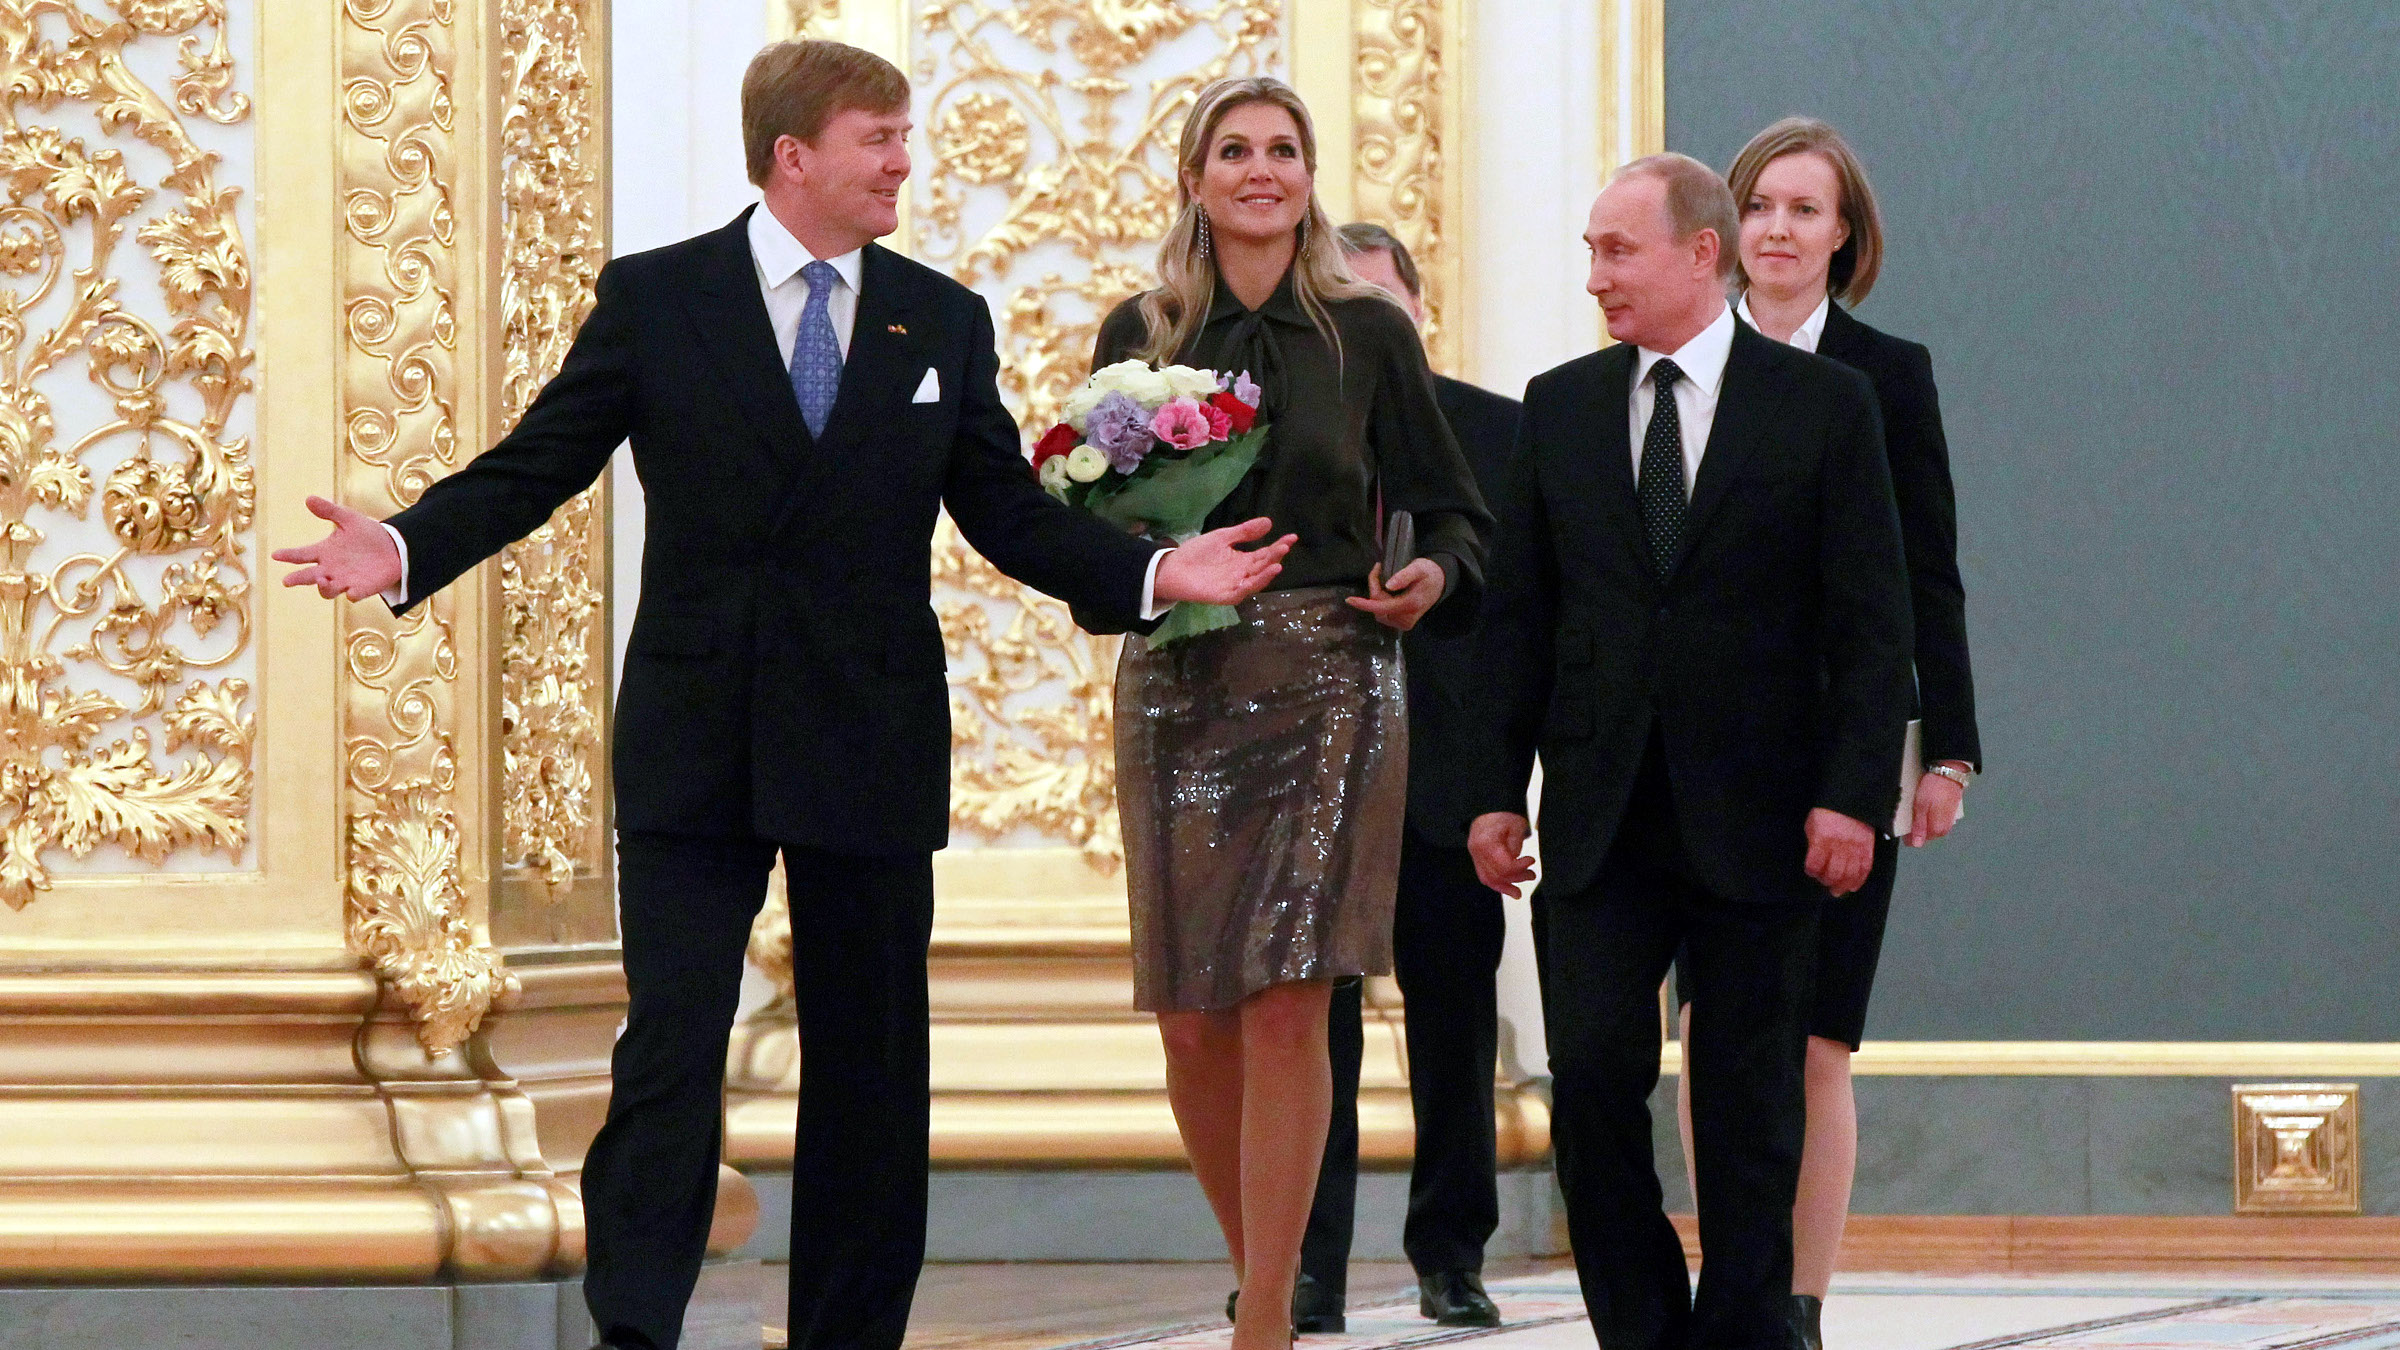 """Netherlands' King Willem-Alexander (L) and Queen Maxima (C) meet Russian President Vladimir Putin in Moscow November 8, 2013. Russia criticised the Netherlands before talks with the Dutch king on Friday, accusing it of """"inaction"""" in not preventing a Greenpeace protest at a Russian Arctic oil rig in which 30 people were arrested."""